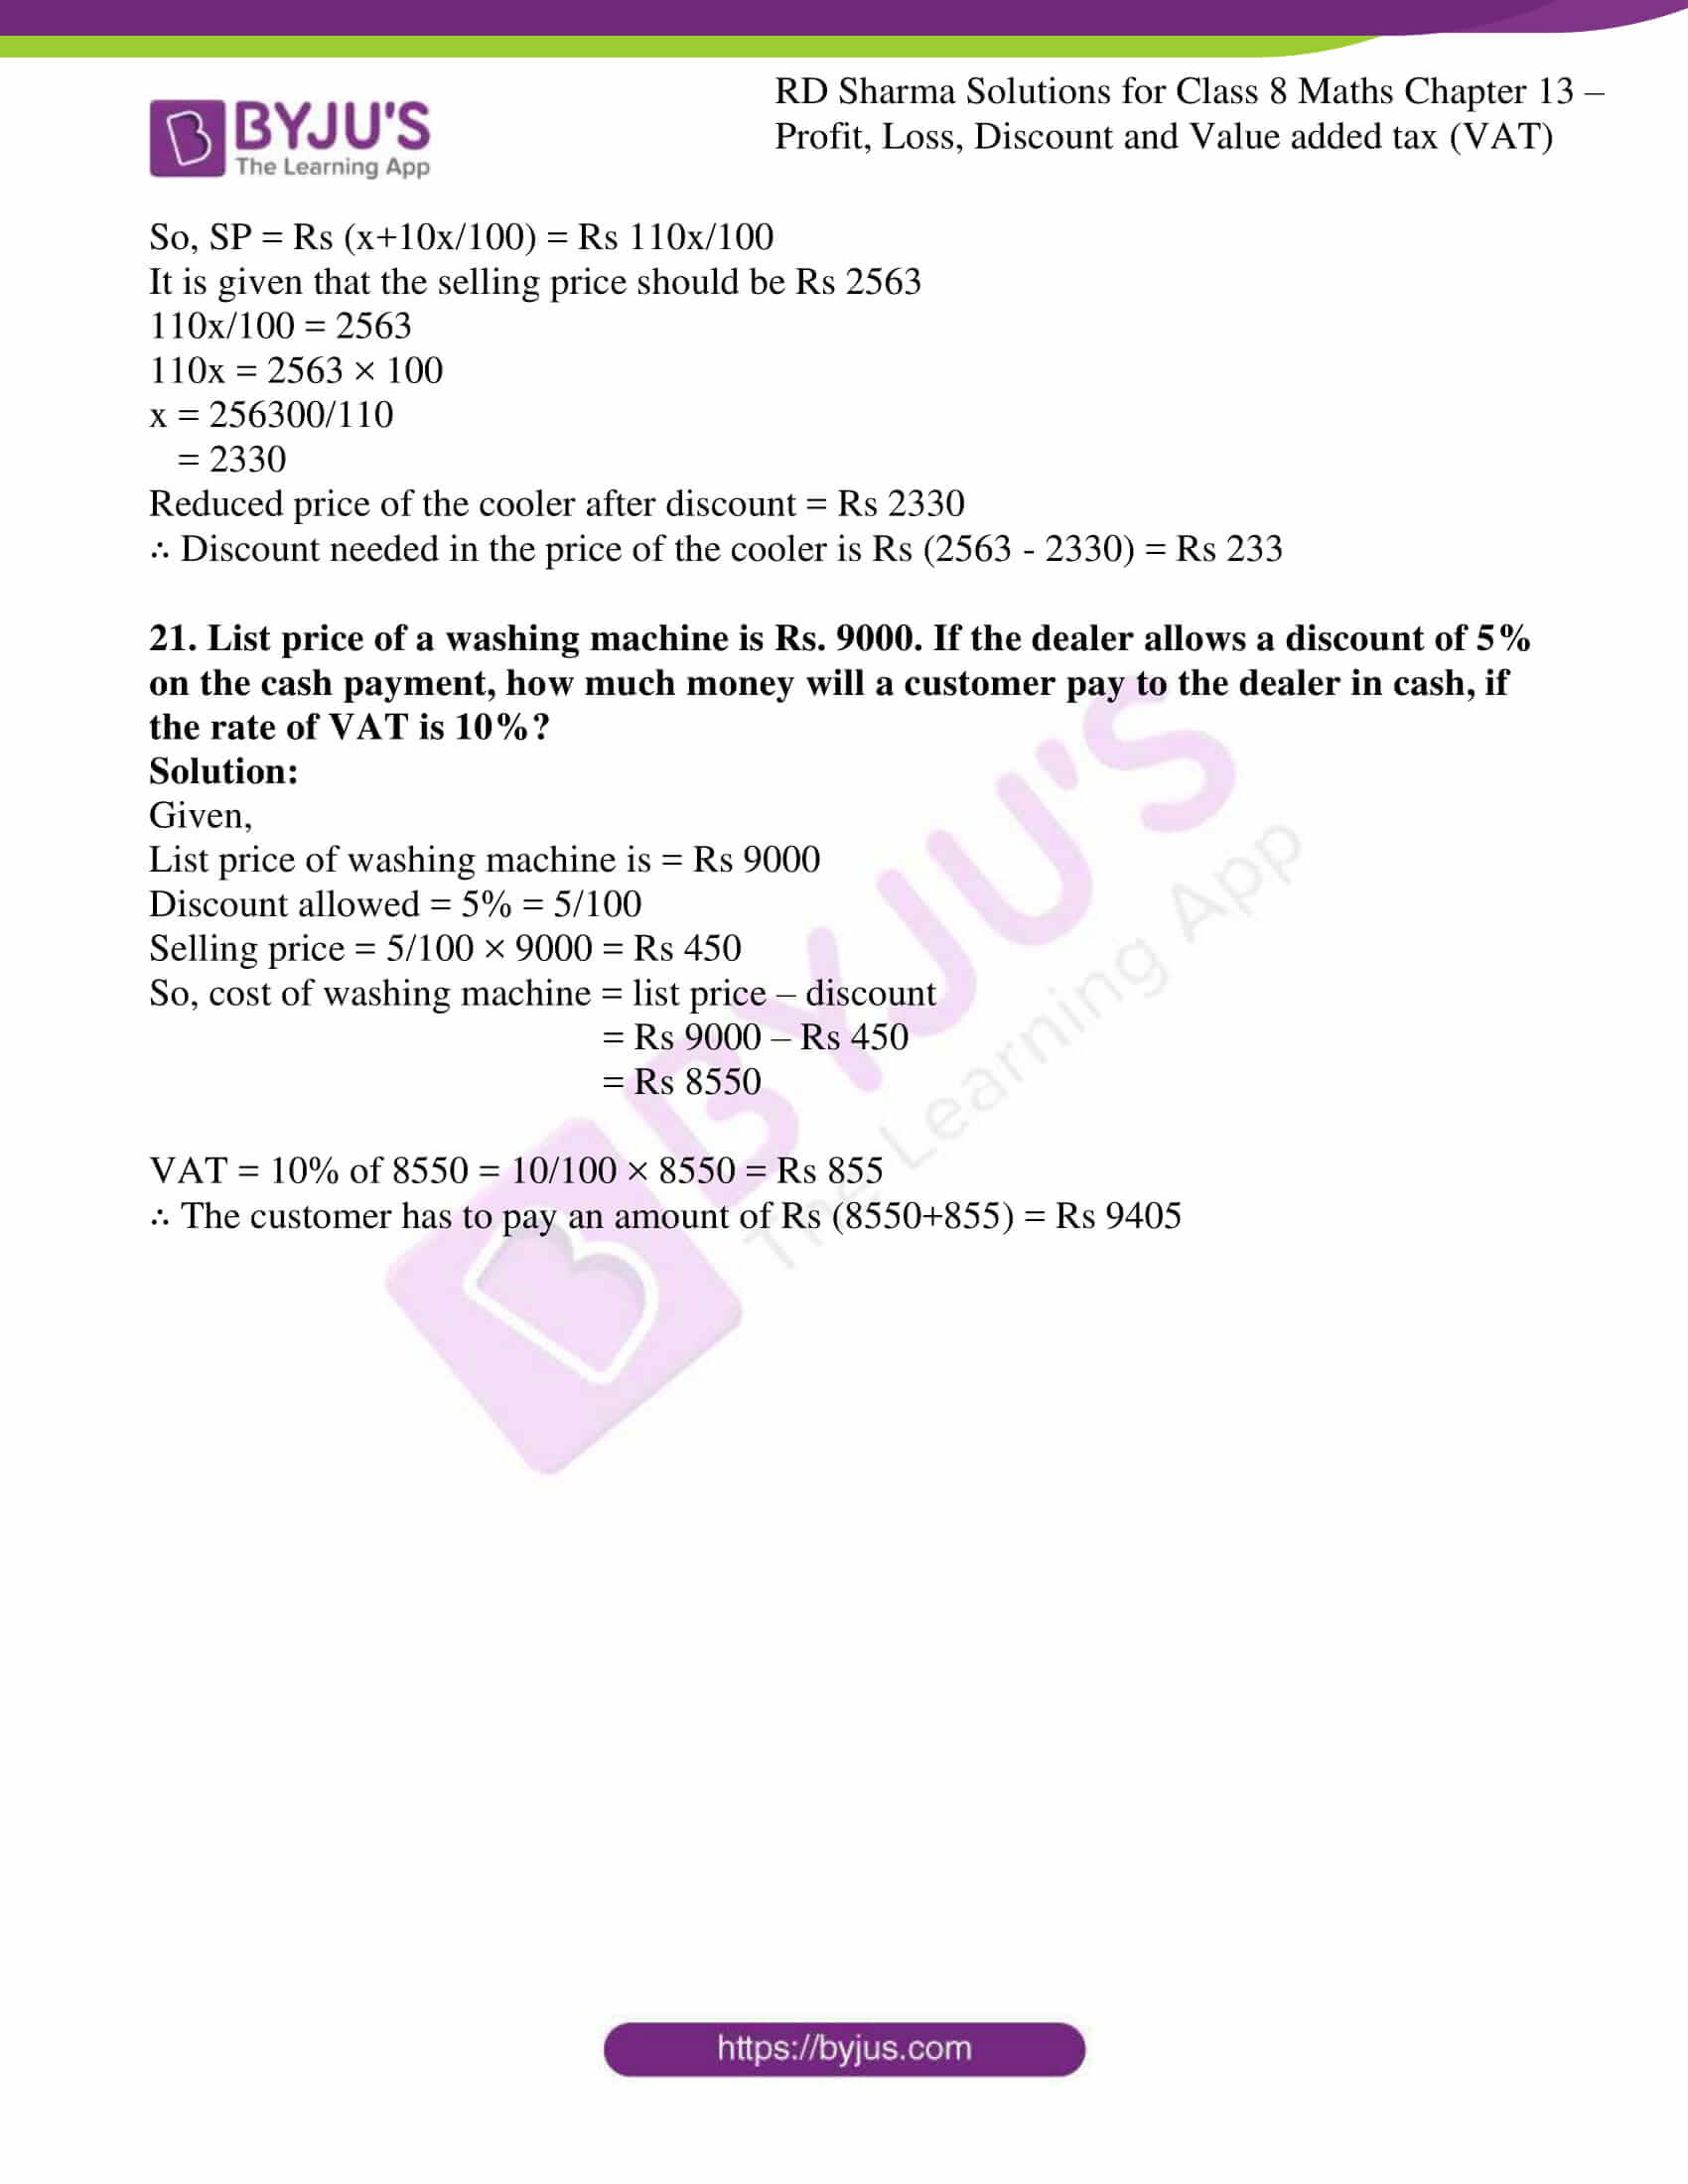 rd sharma class 8 maths chapter 13 exercise 13.3